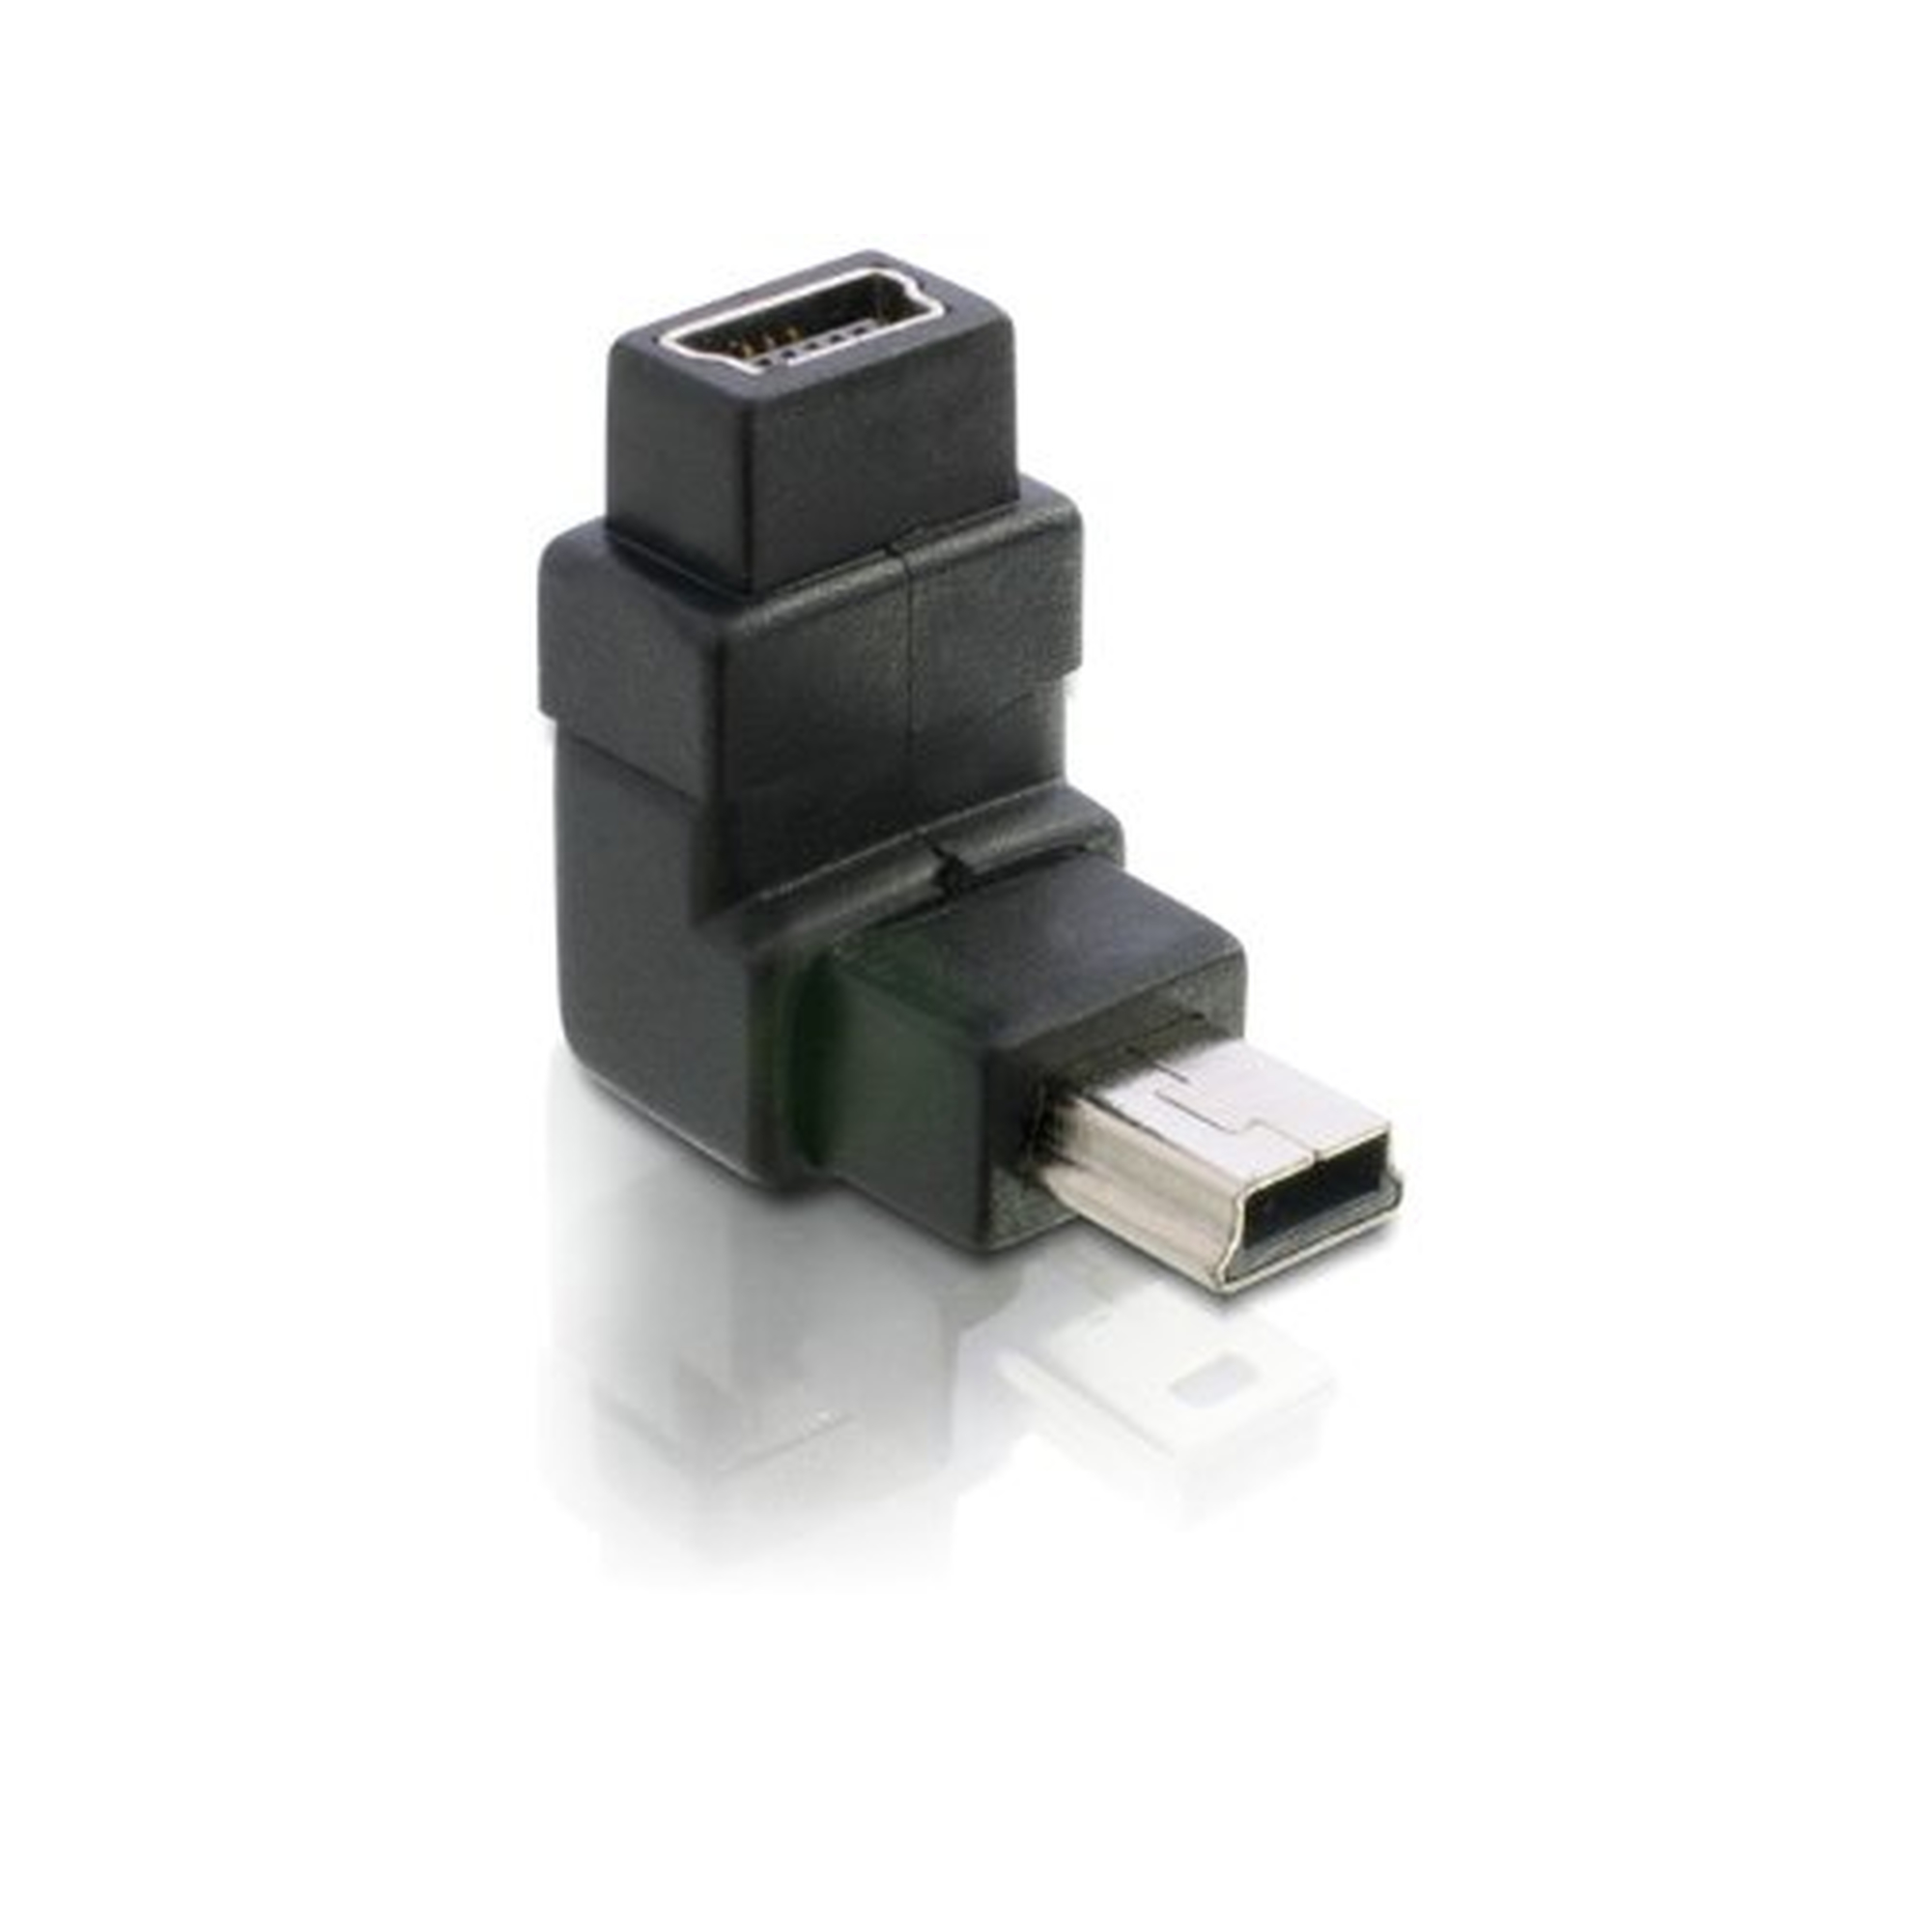 DeLOCK Adapter USB-B mini 5pin Stecker Buchse 90�